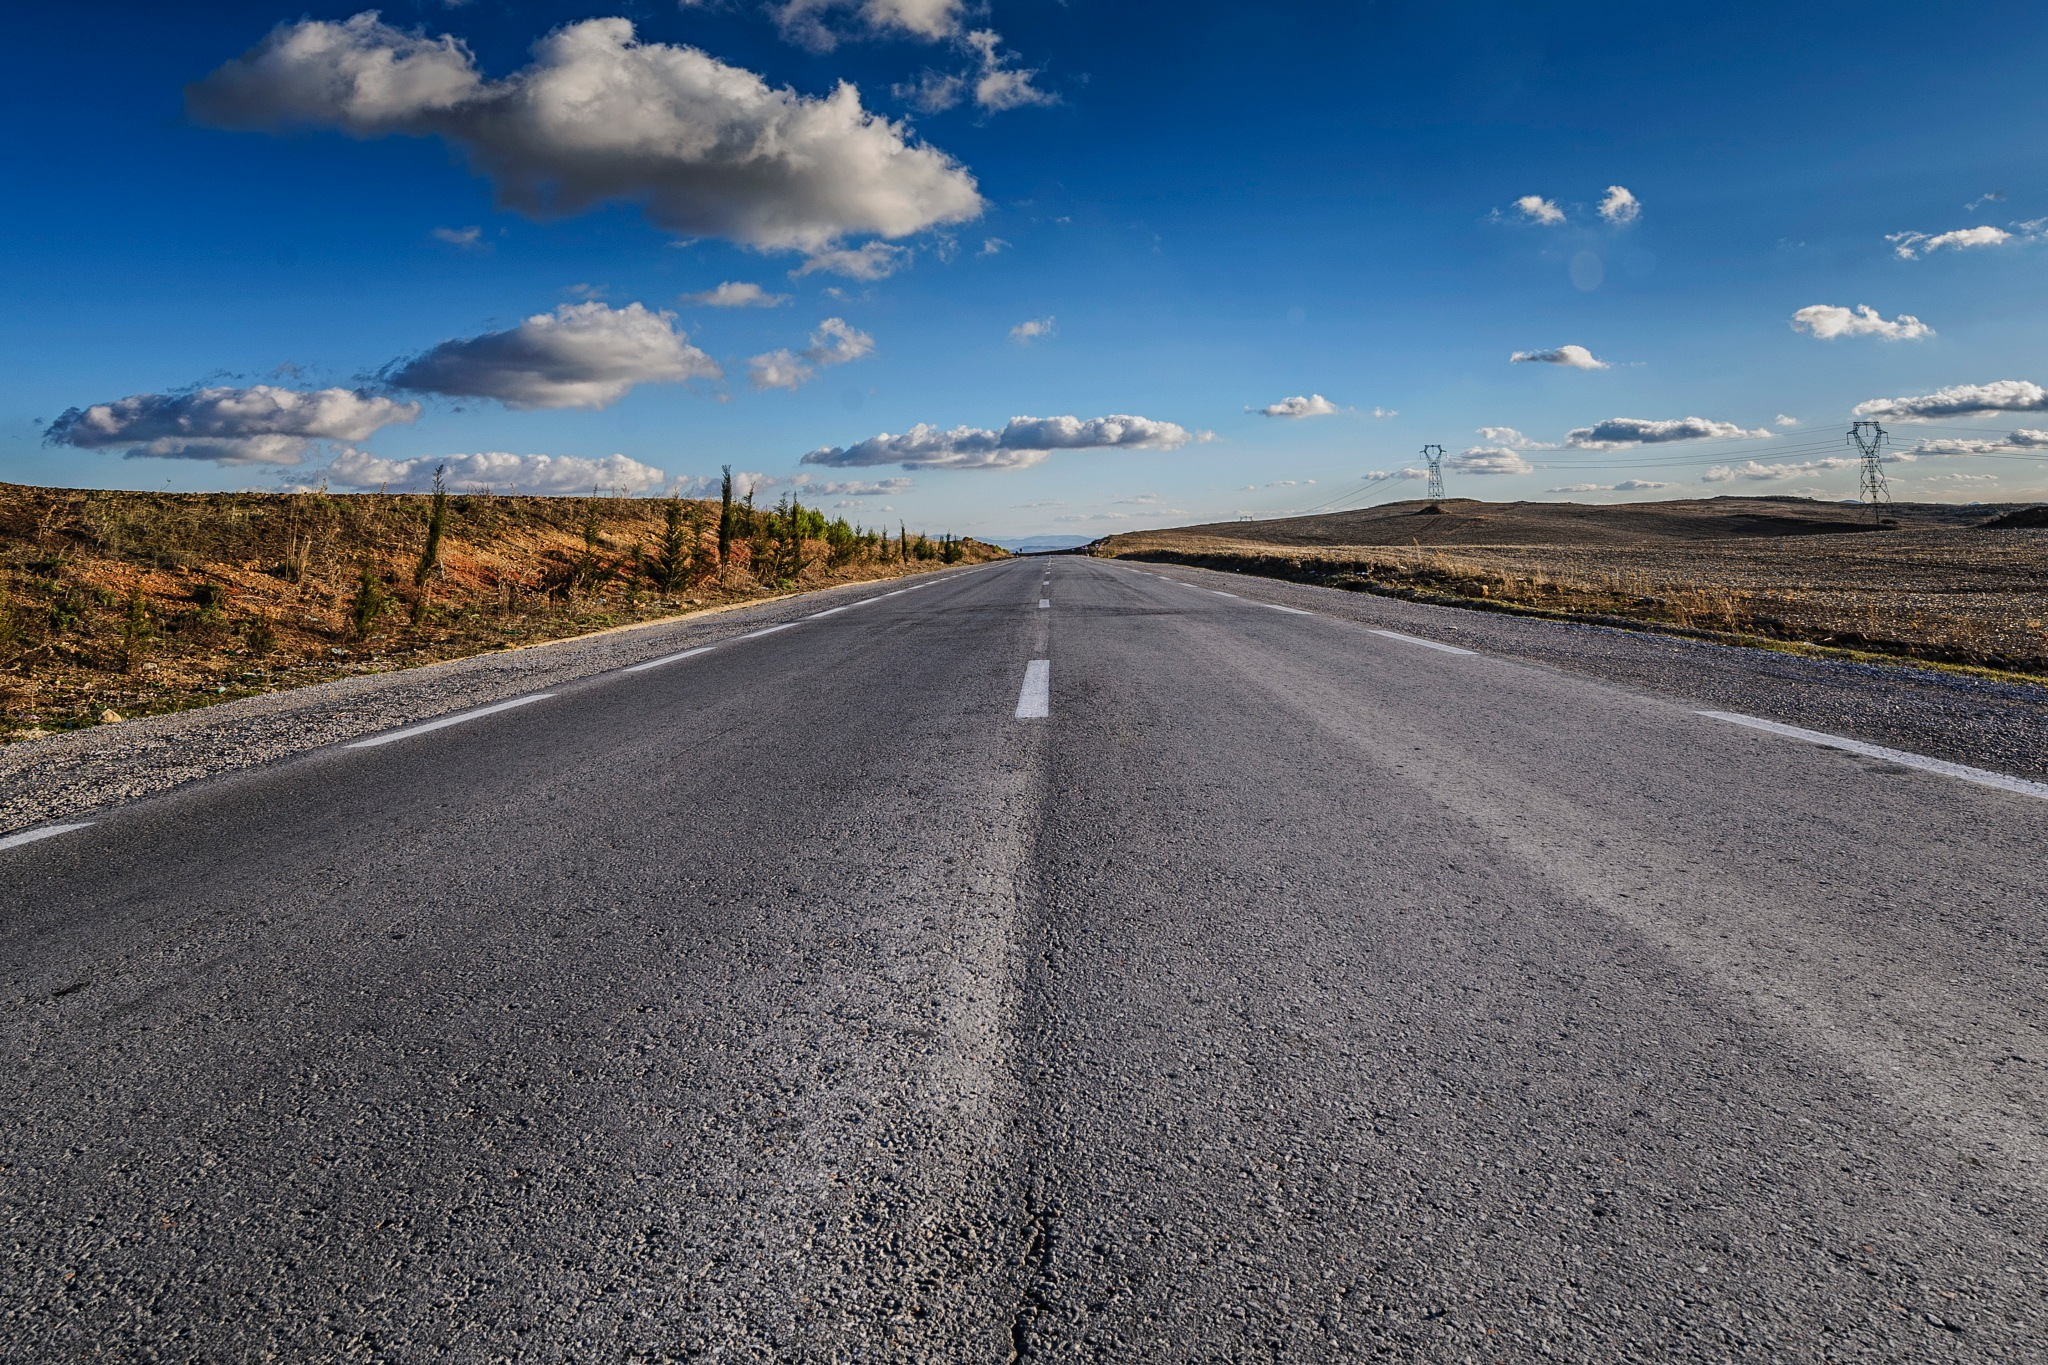 Road by Noureddine Belfethi